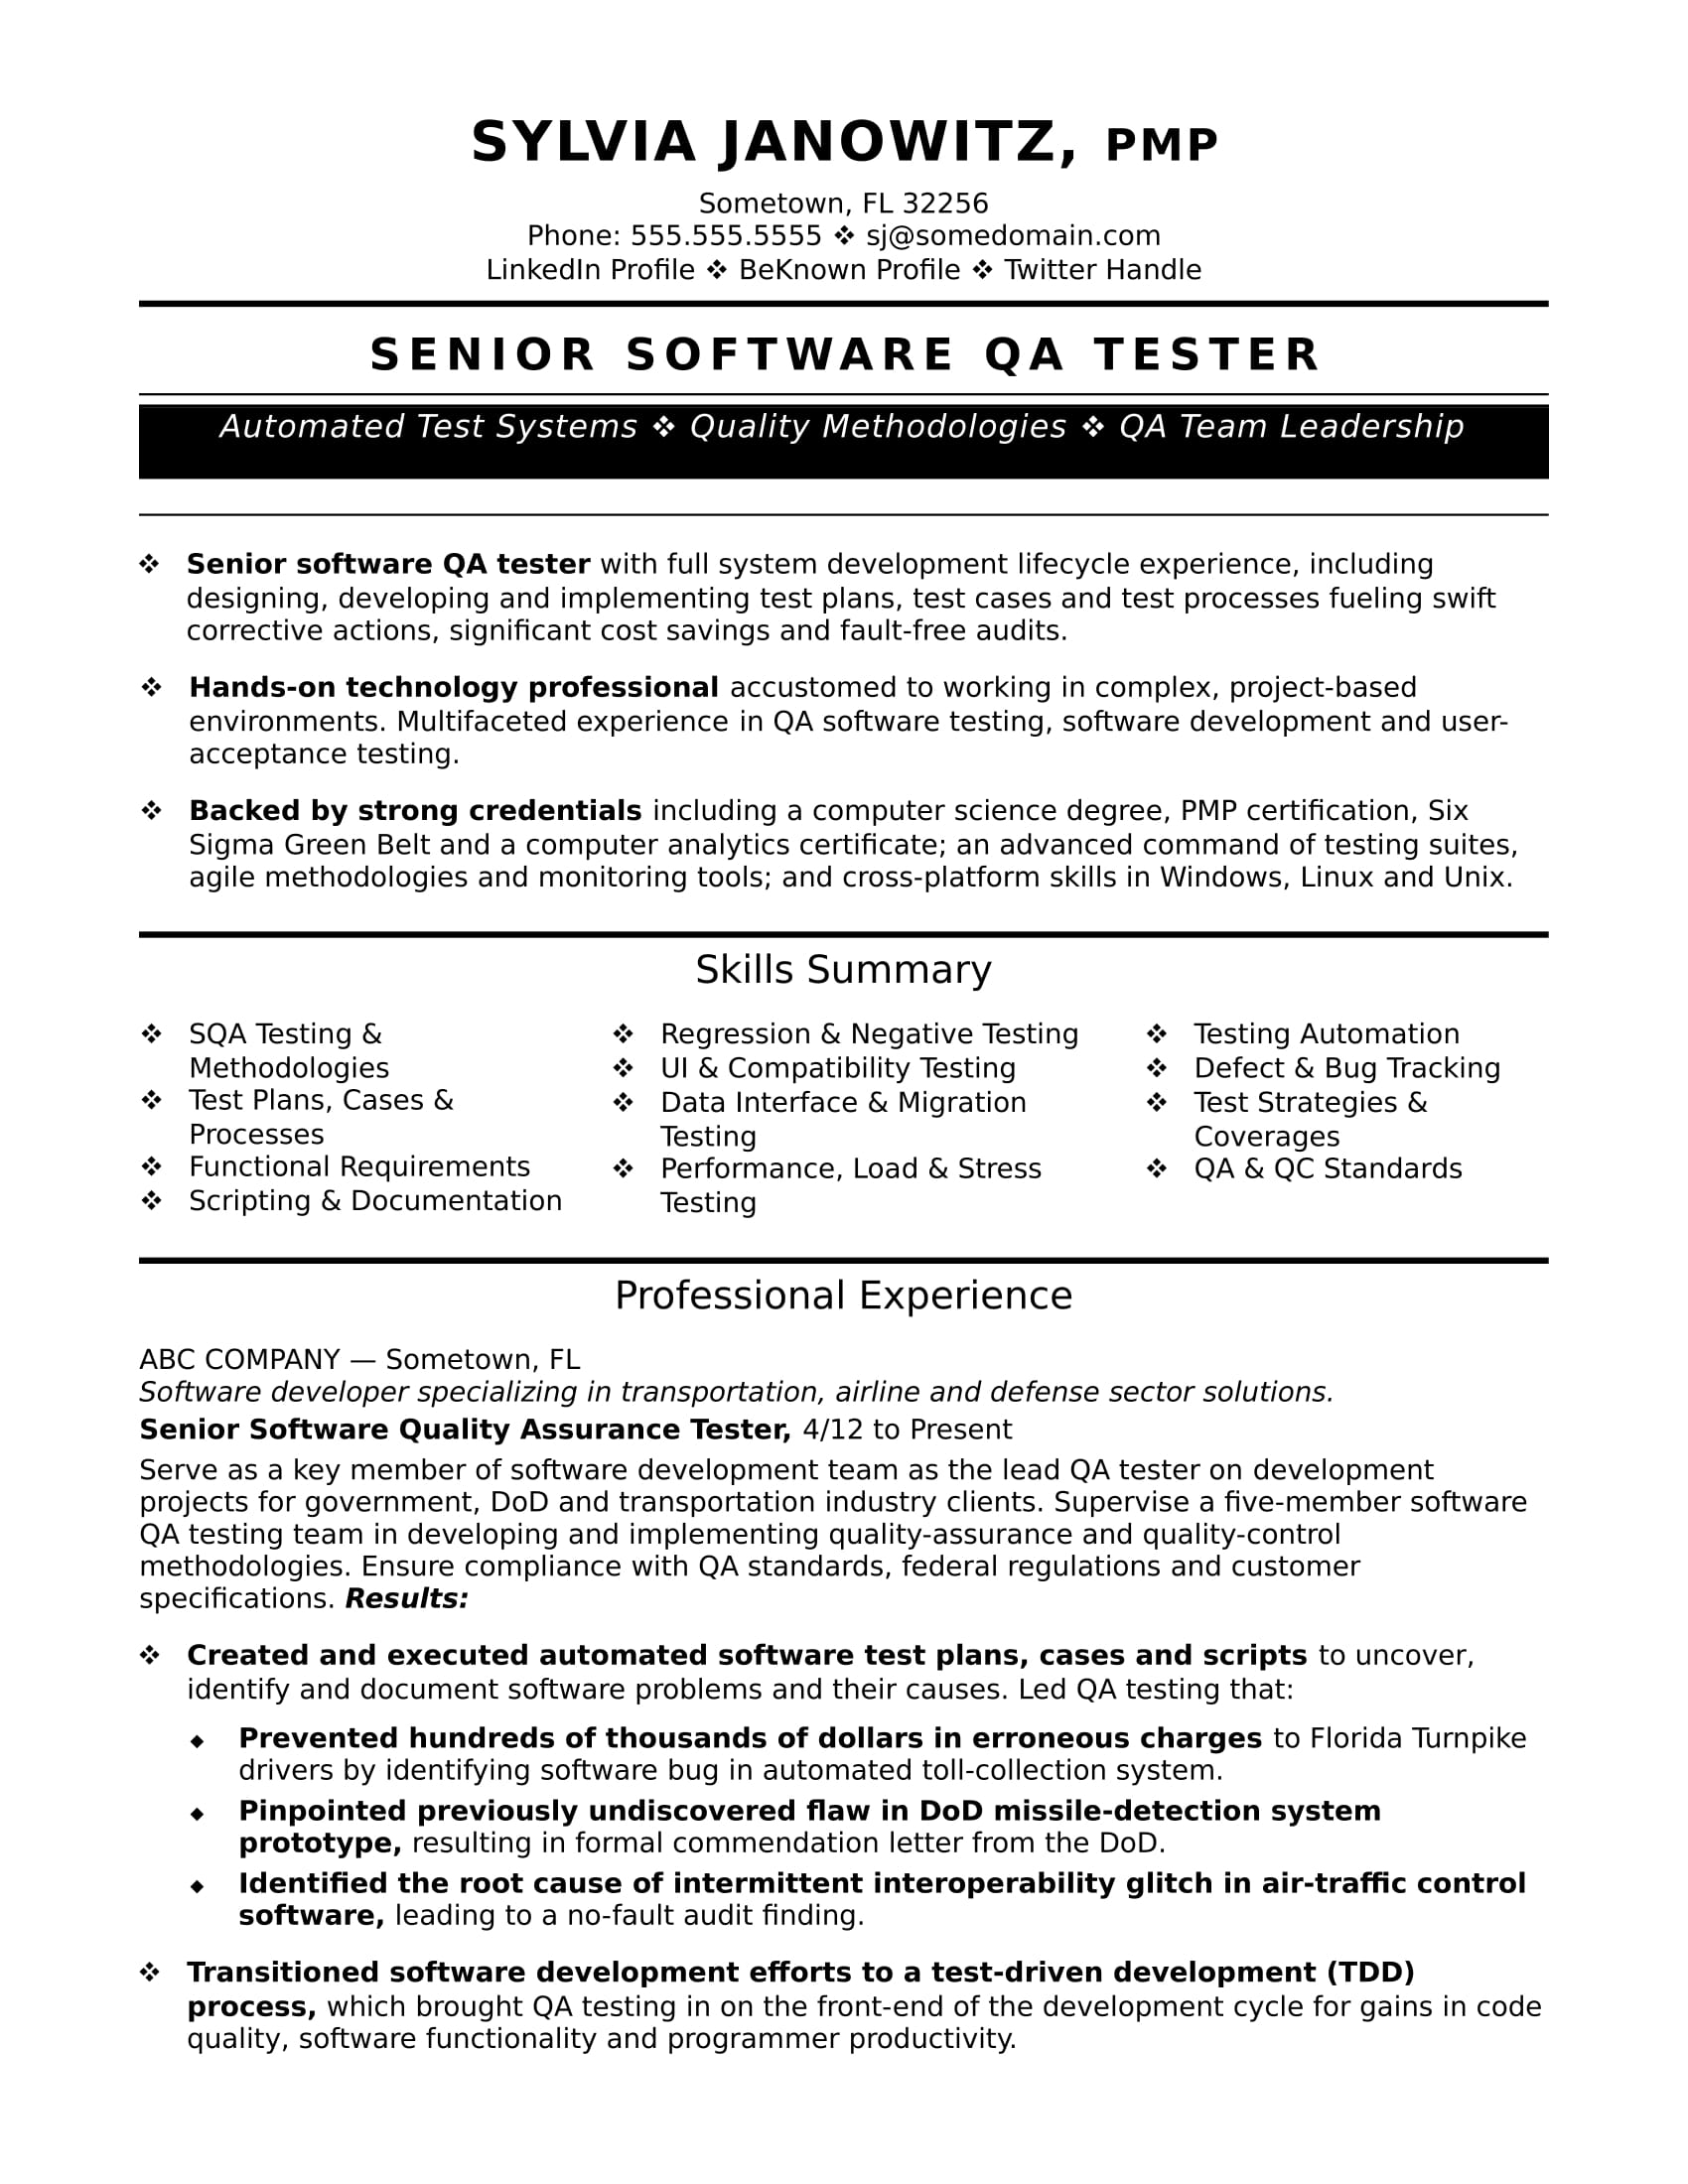 experienced qa software tester resume sample - Software Tester Resume Sample